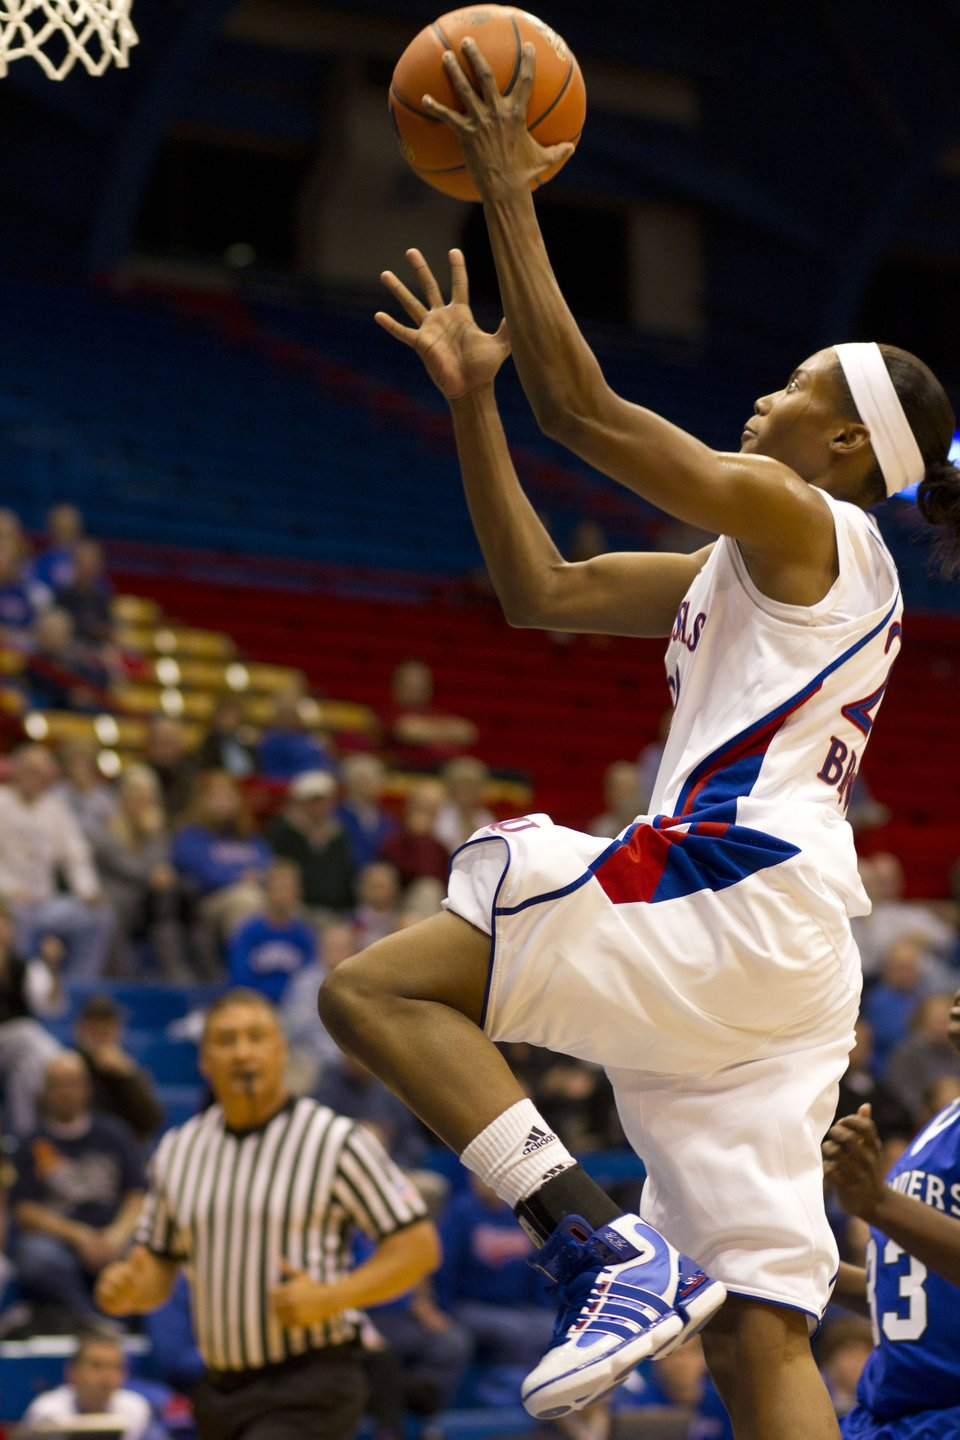 KU women's basketball vs. Texas A&M-Corpus Christi ...